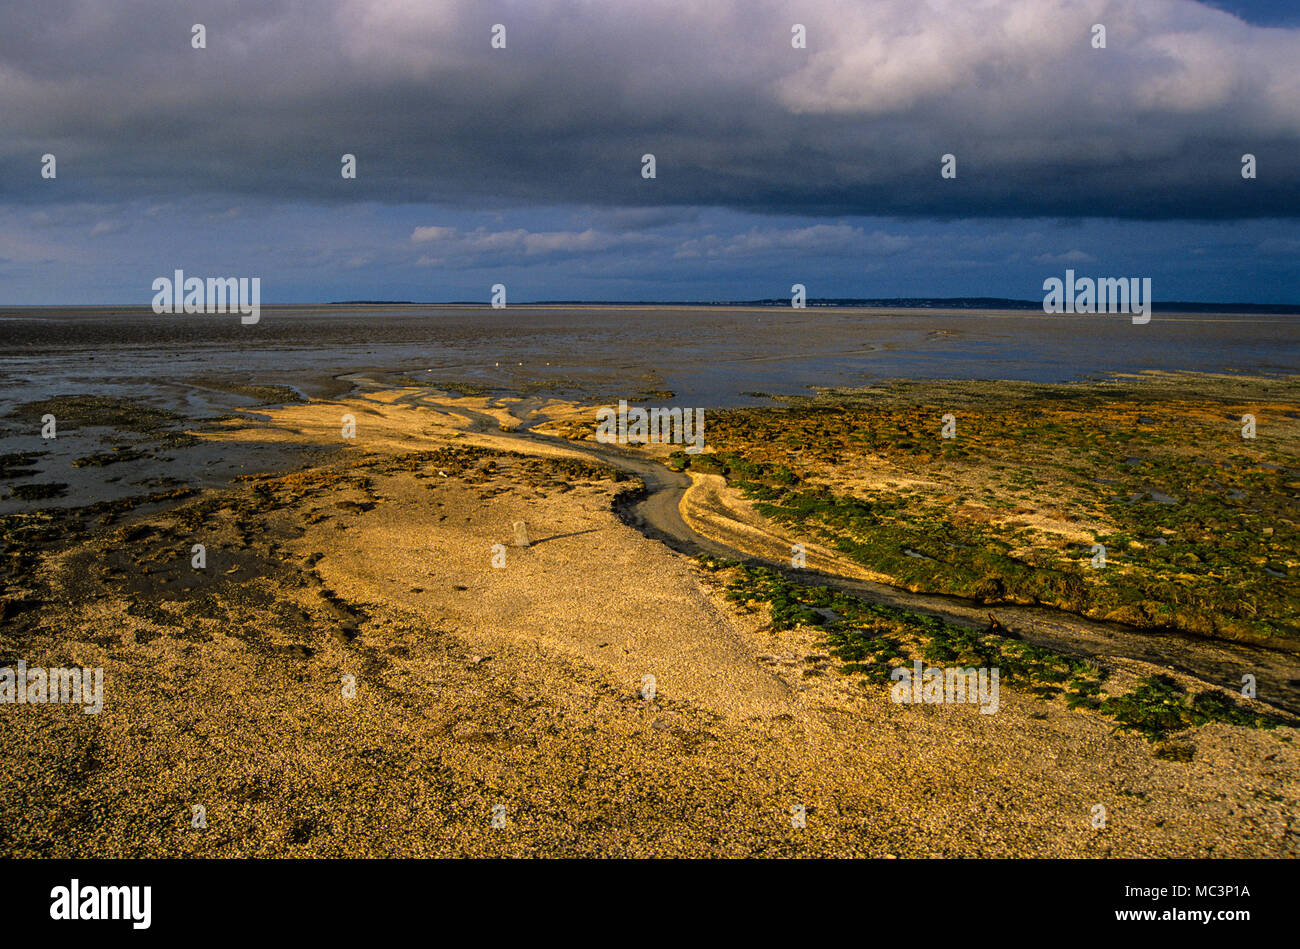 Salisbury Bank, Moyston Docks, River Dee Estuary, Clwyd, Wales, UK, GB. - Stock Image